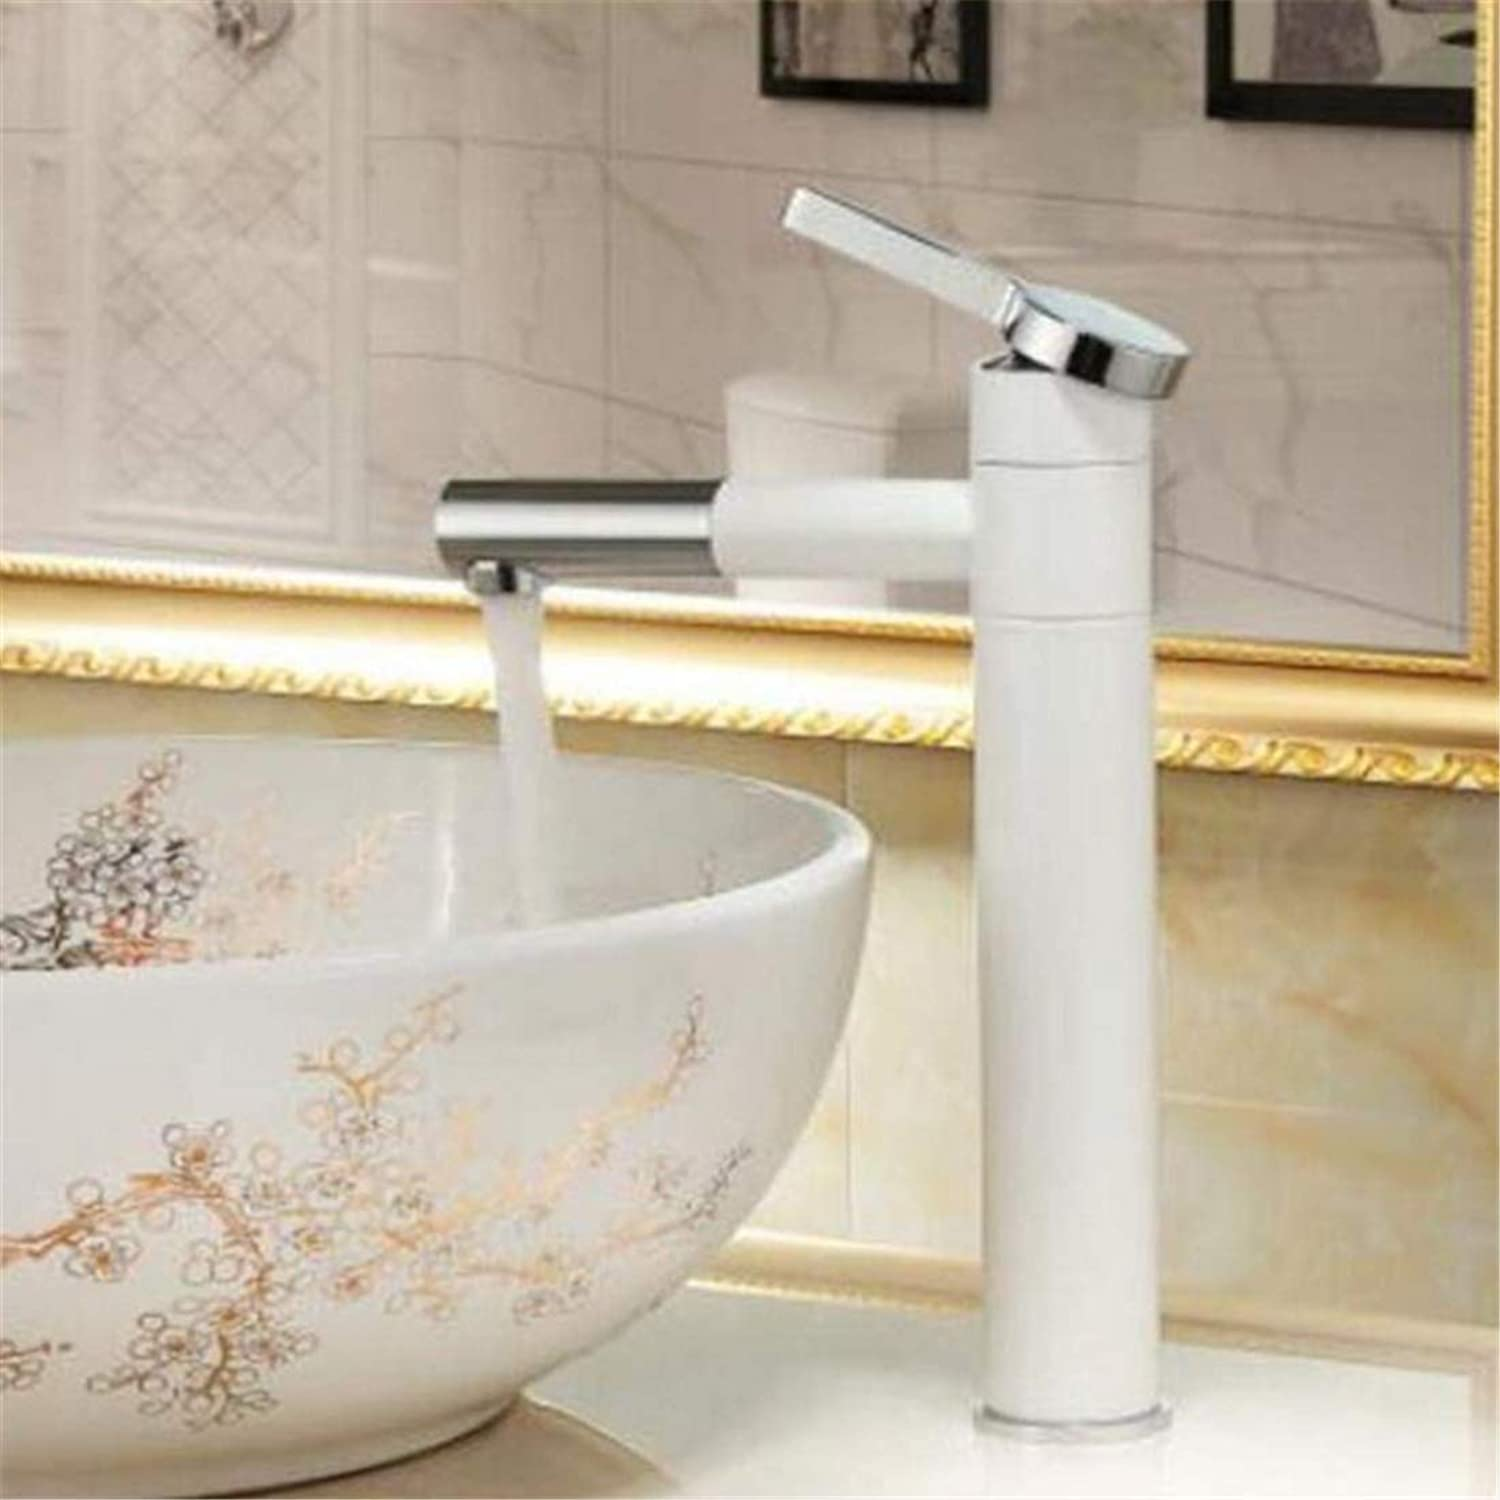 Retro Faucetcold Water Basin Mixer Tap Brass Sink Water Tap